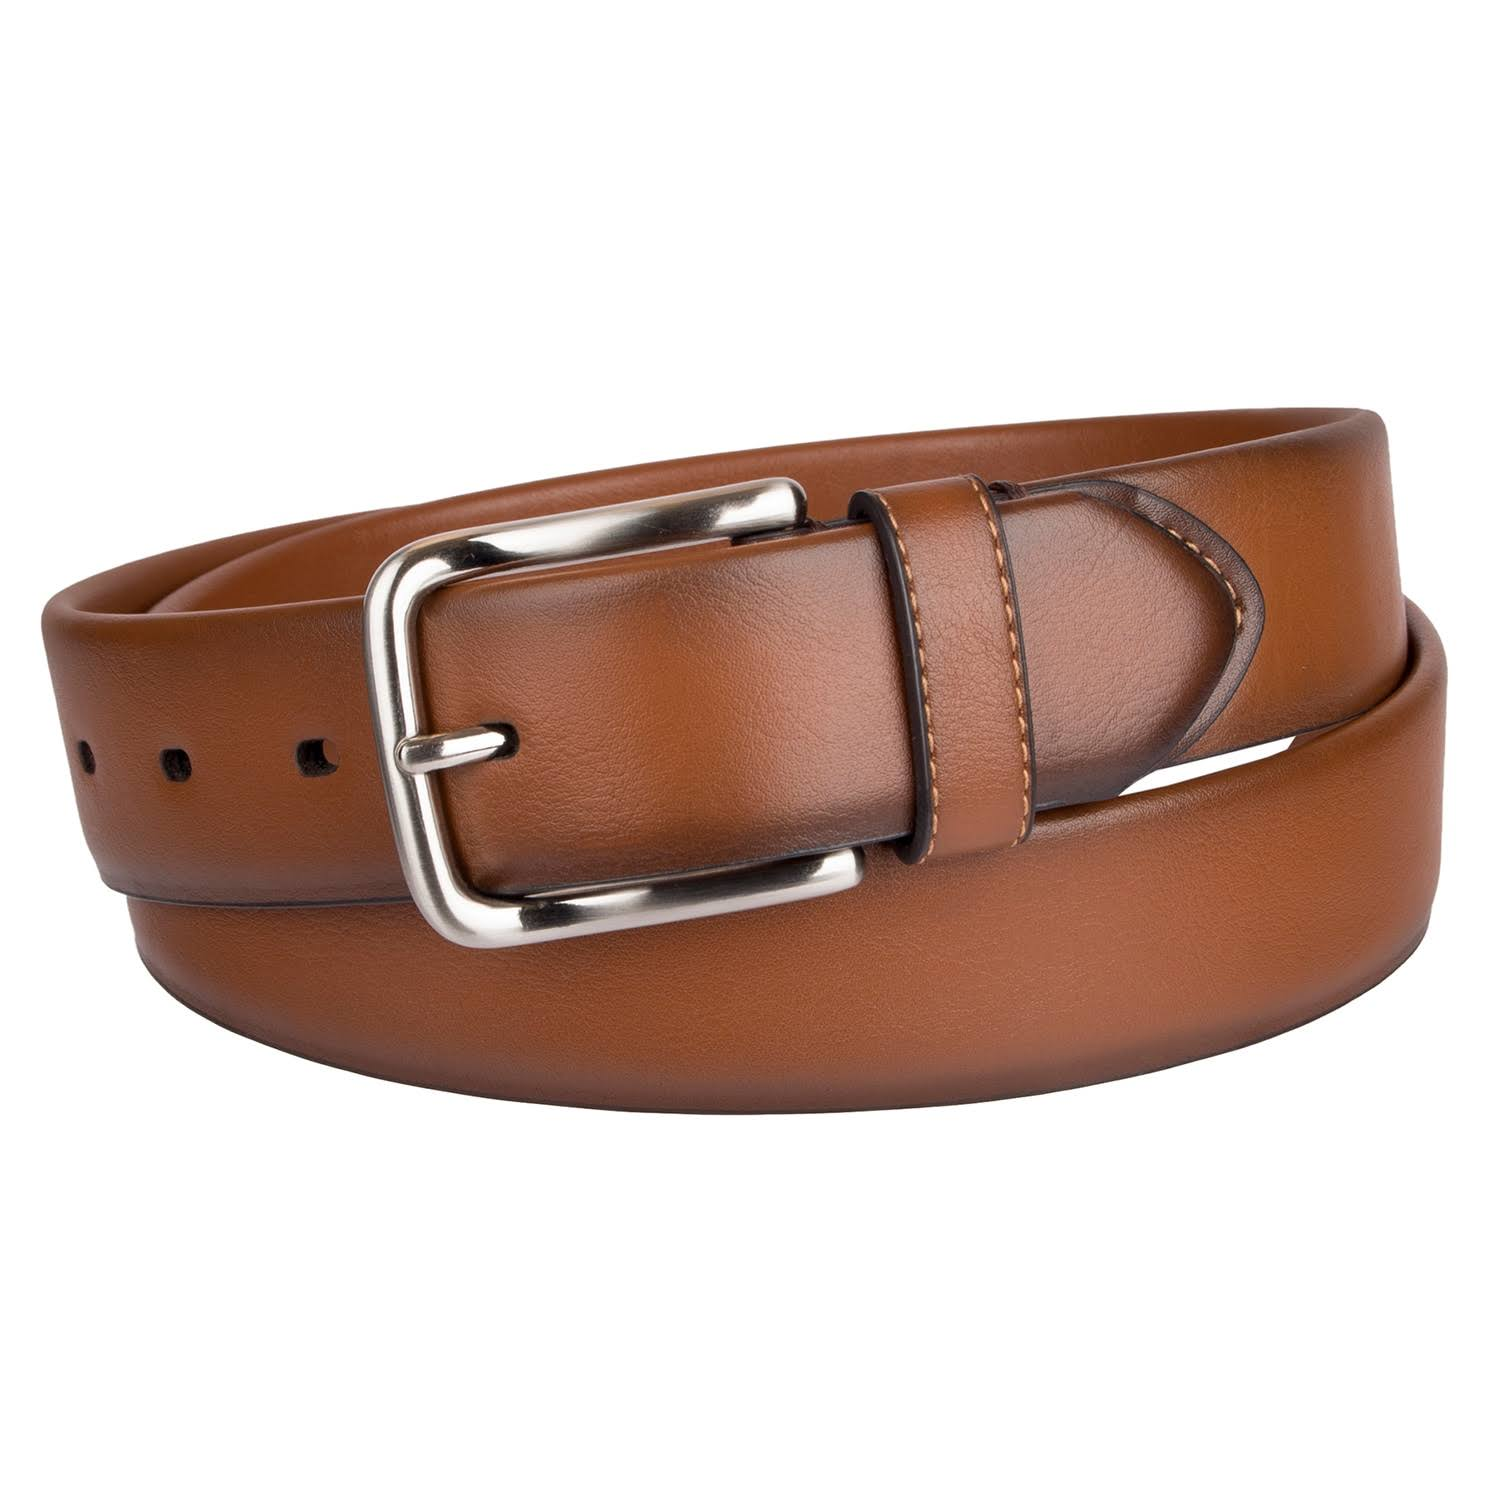 Dockers Men's Stretch Belt, Tan, Size Small